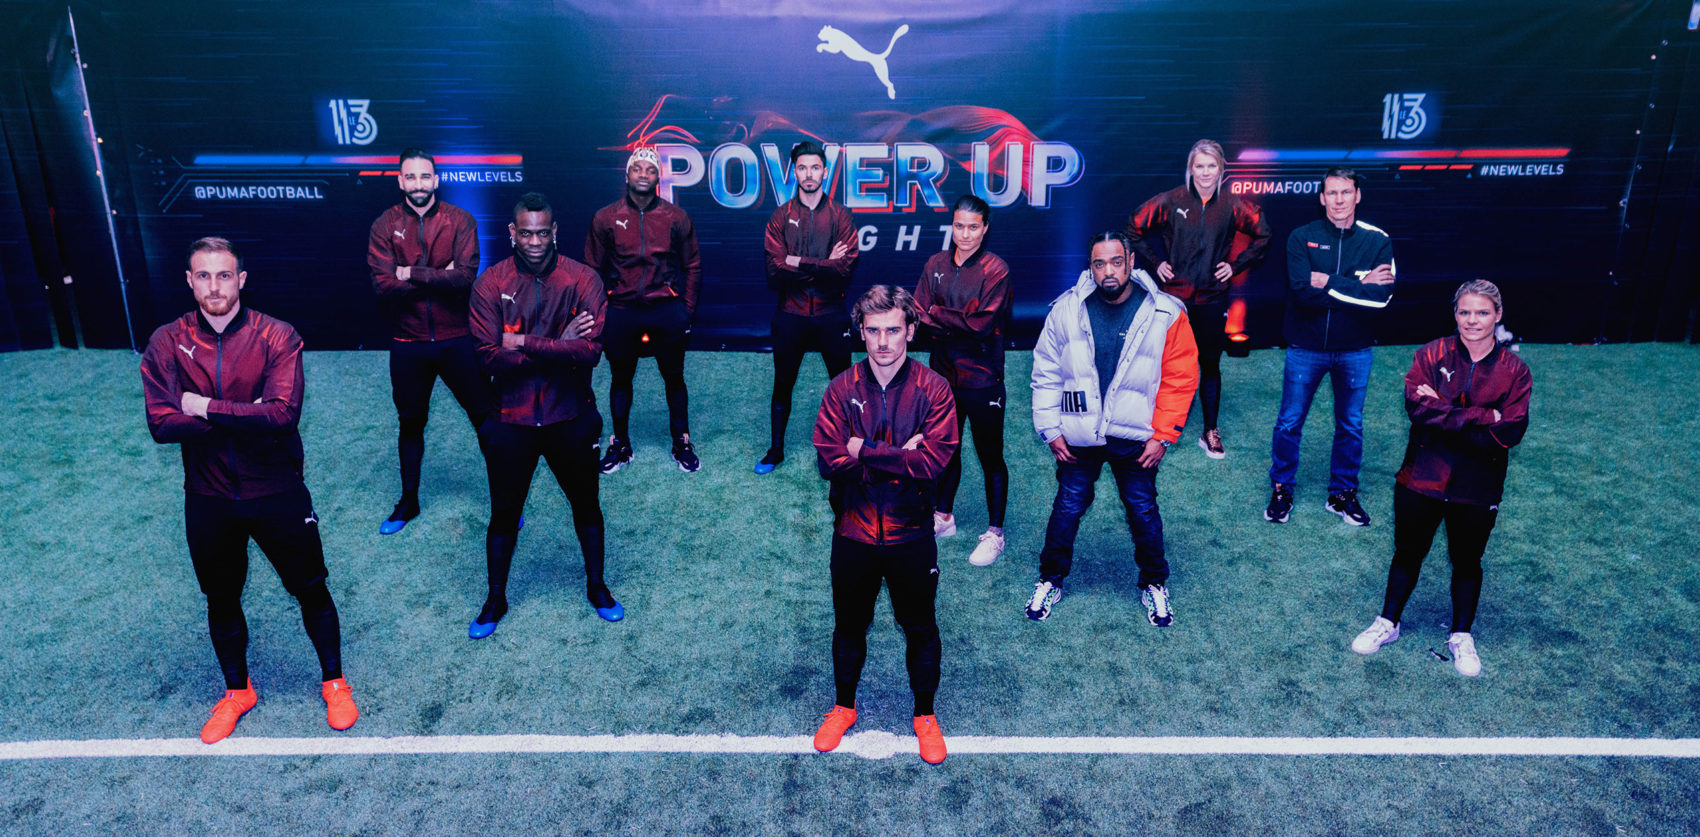 MARSEILLE_le_13_Puma_Event_POWER_UP_NIGHT